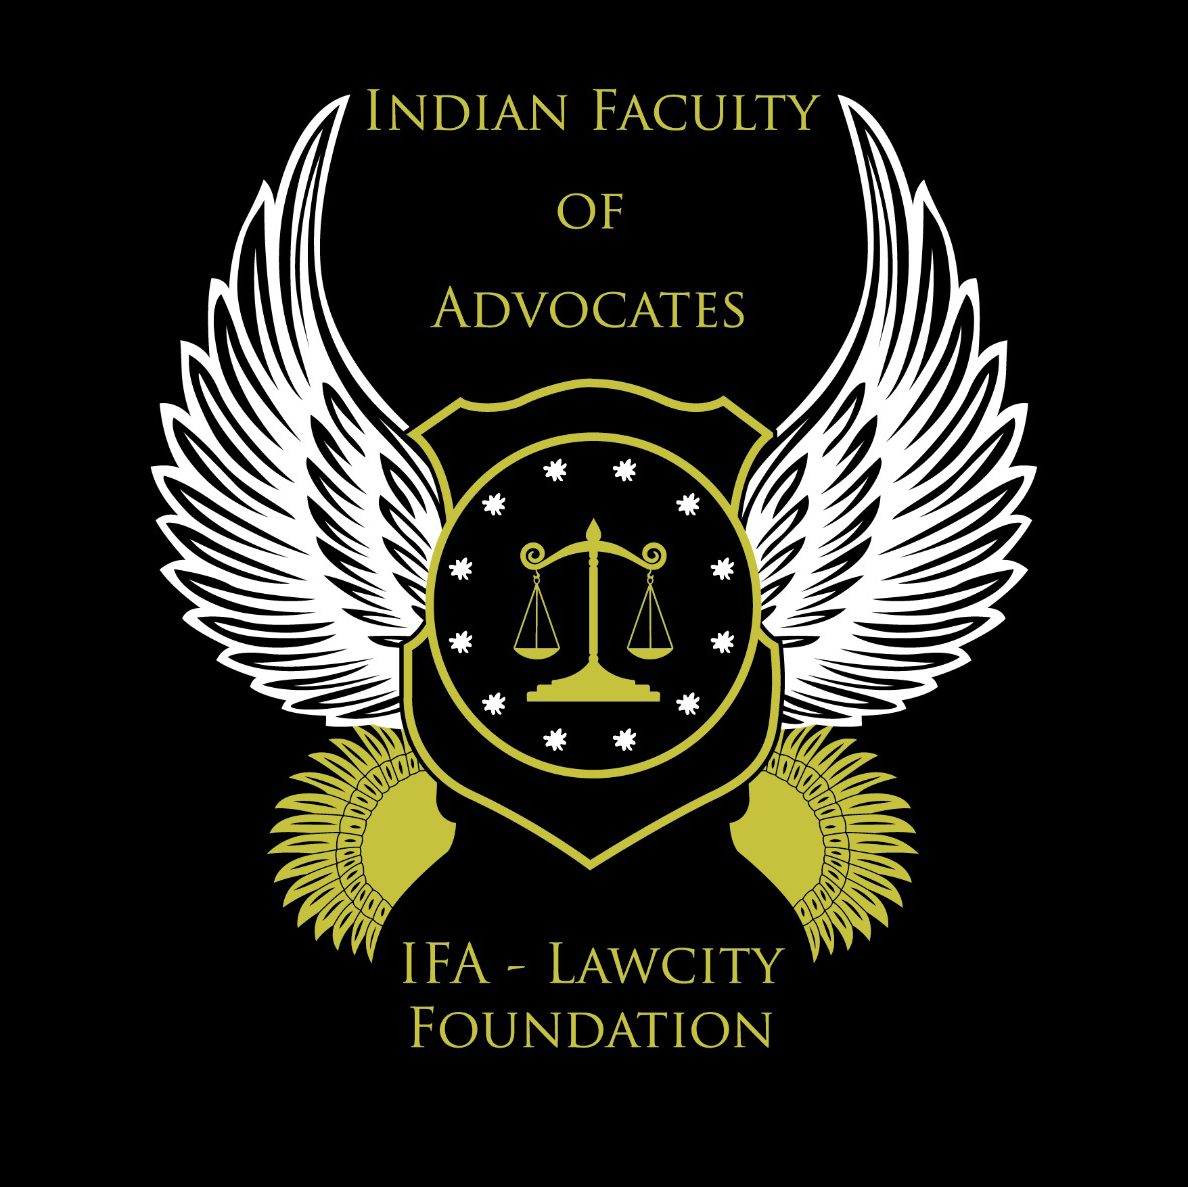 Indian Faculty of Advocates